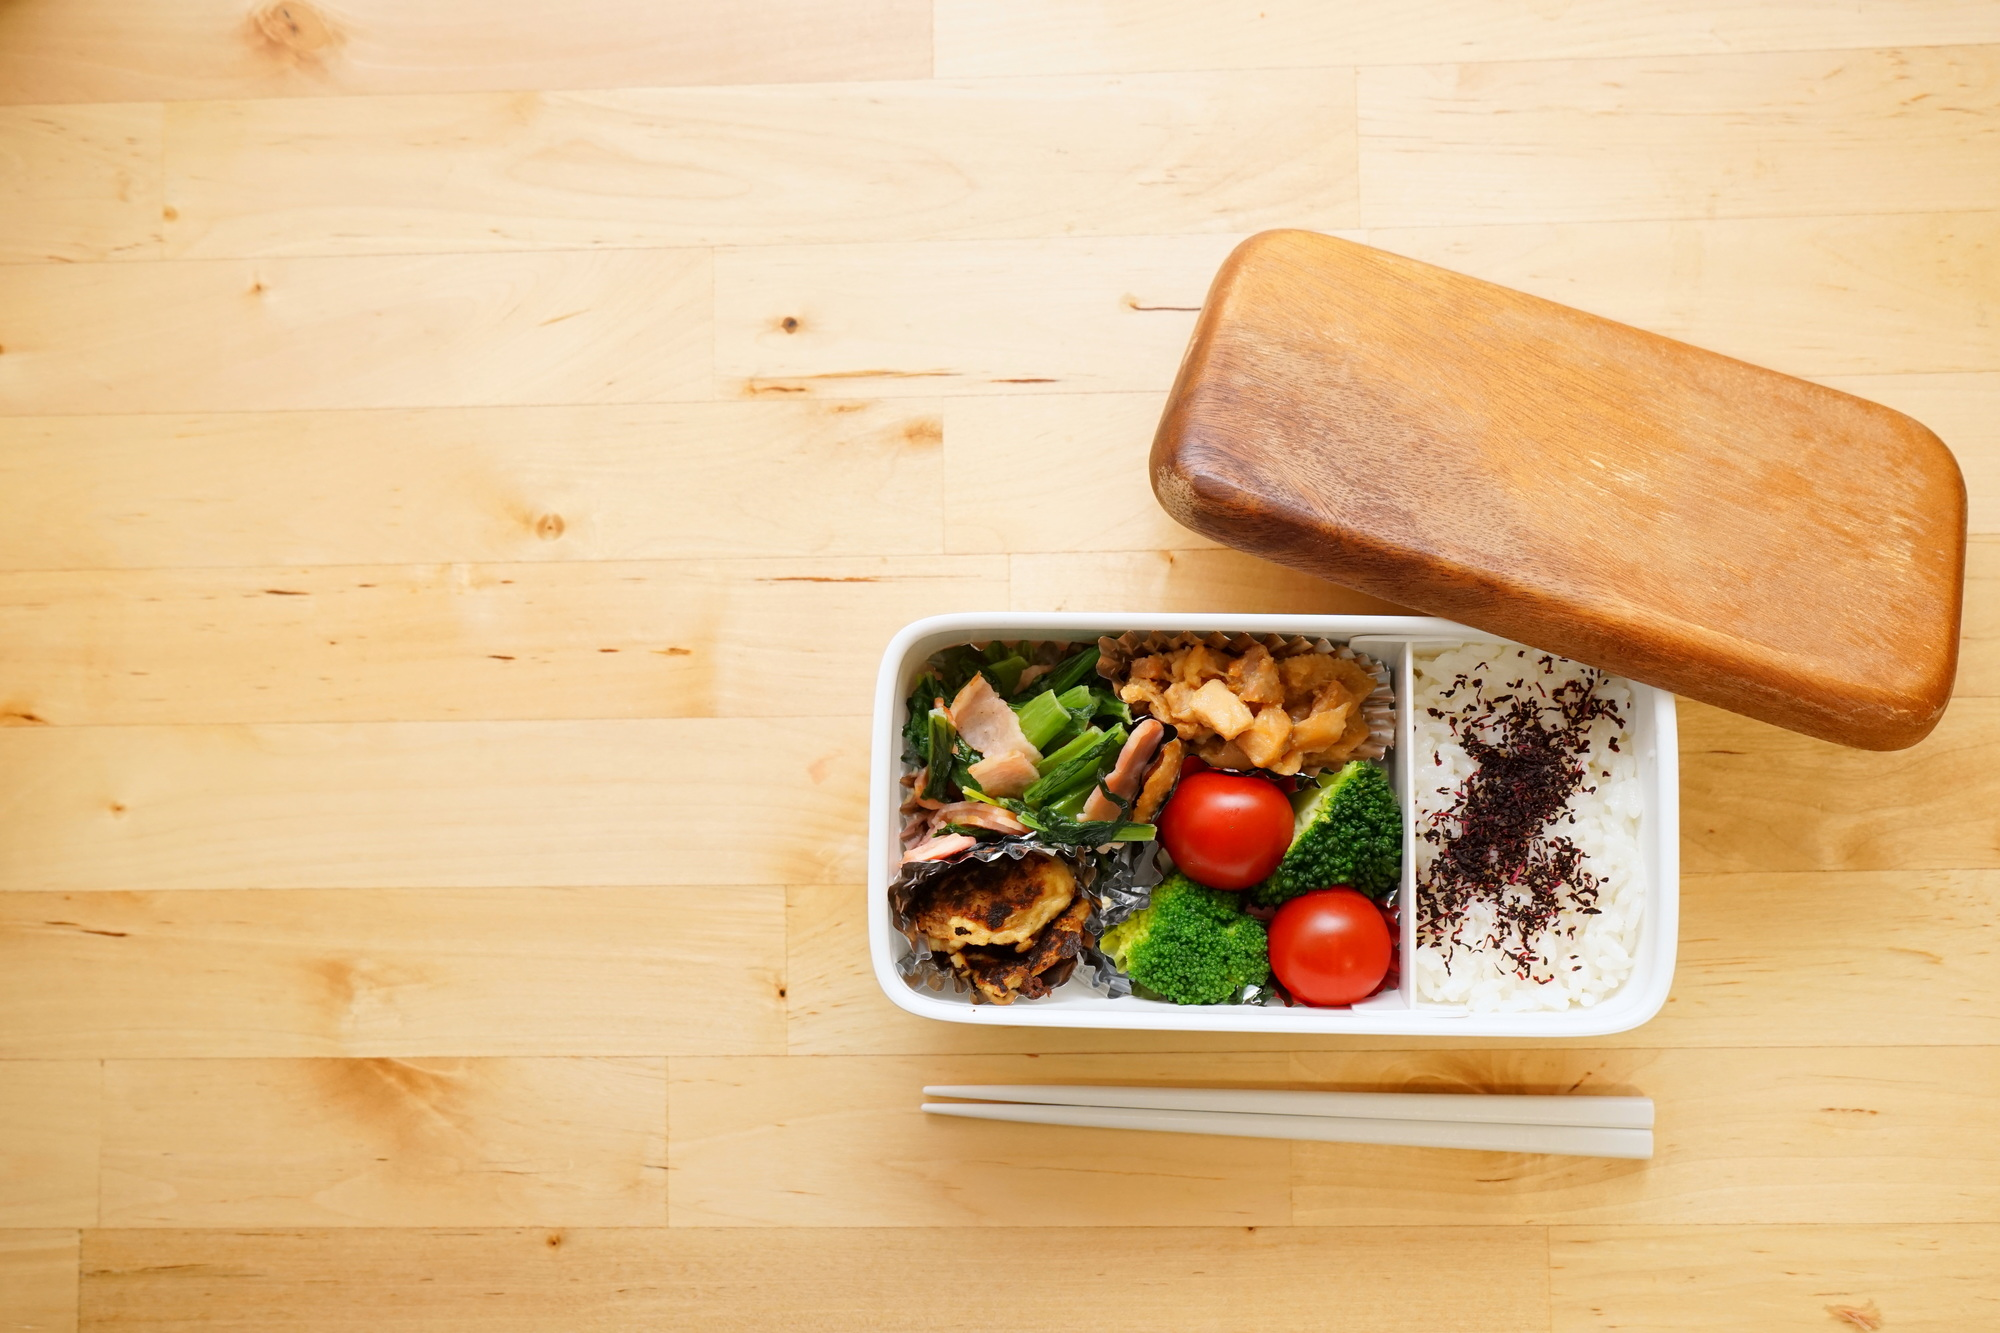 Bento, a look inside the Japanese lunchbox